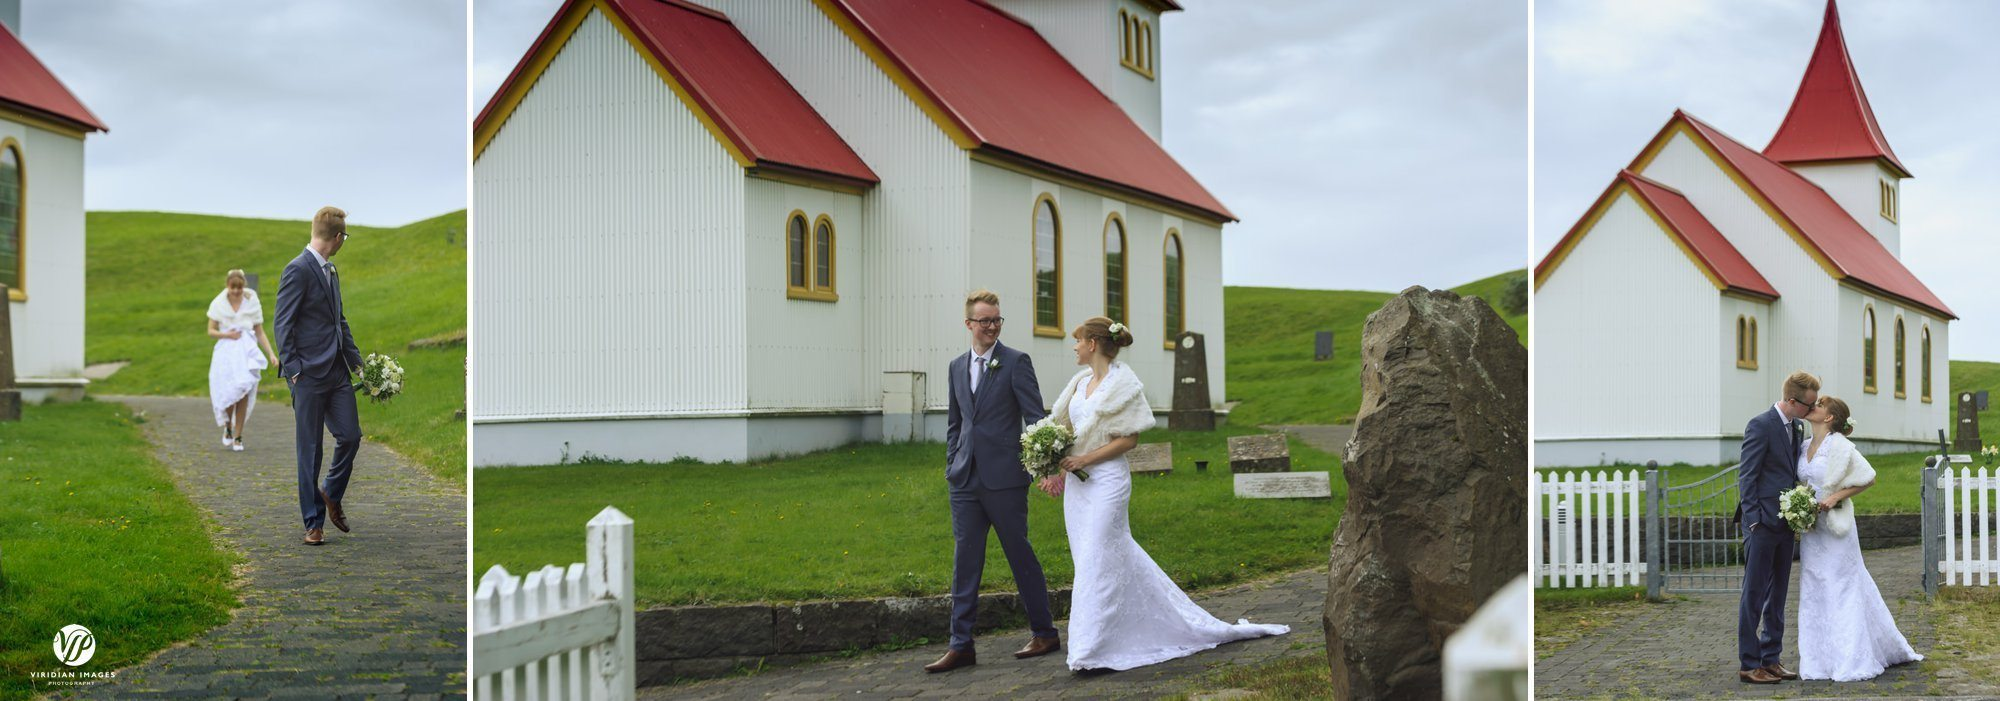 playful moment with couple walking near Oddikirkja church in Hella Iceland